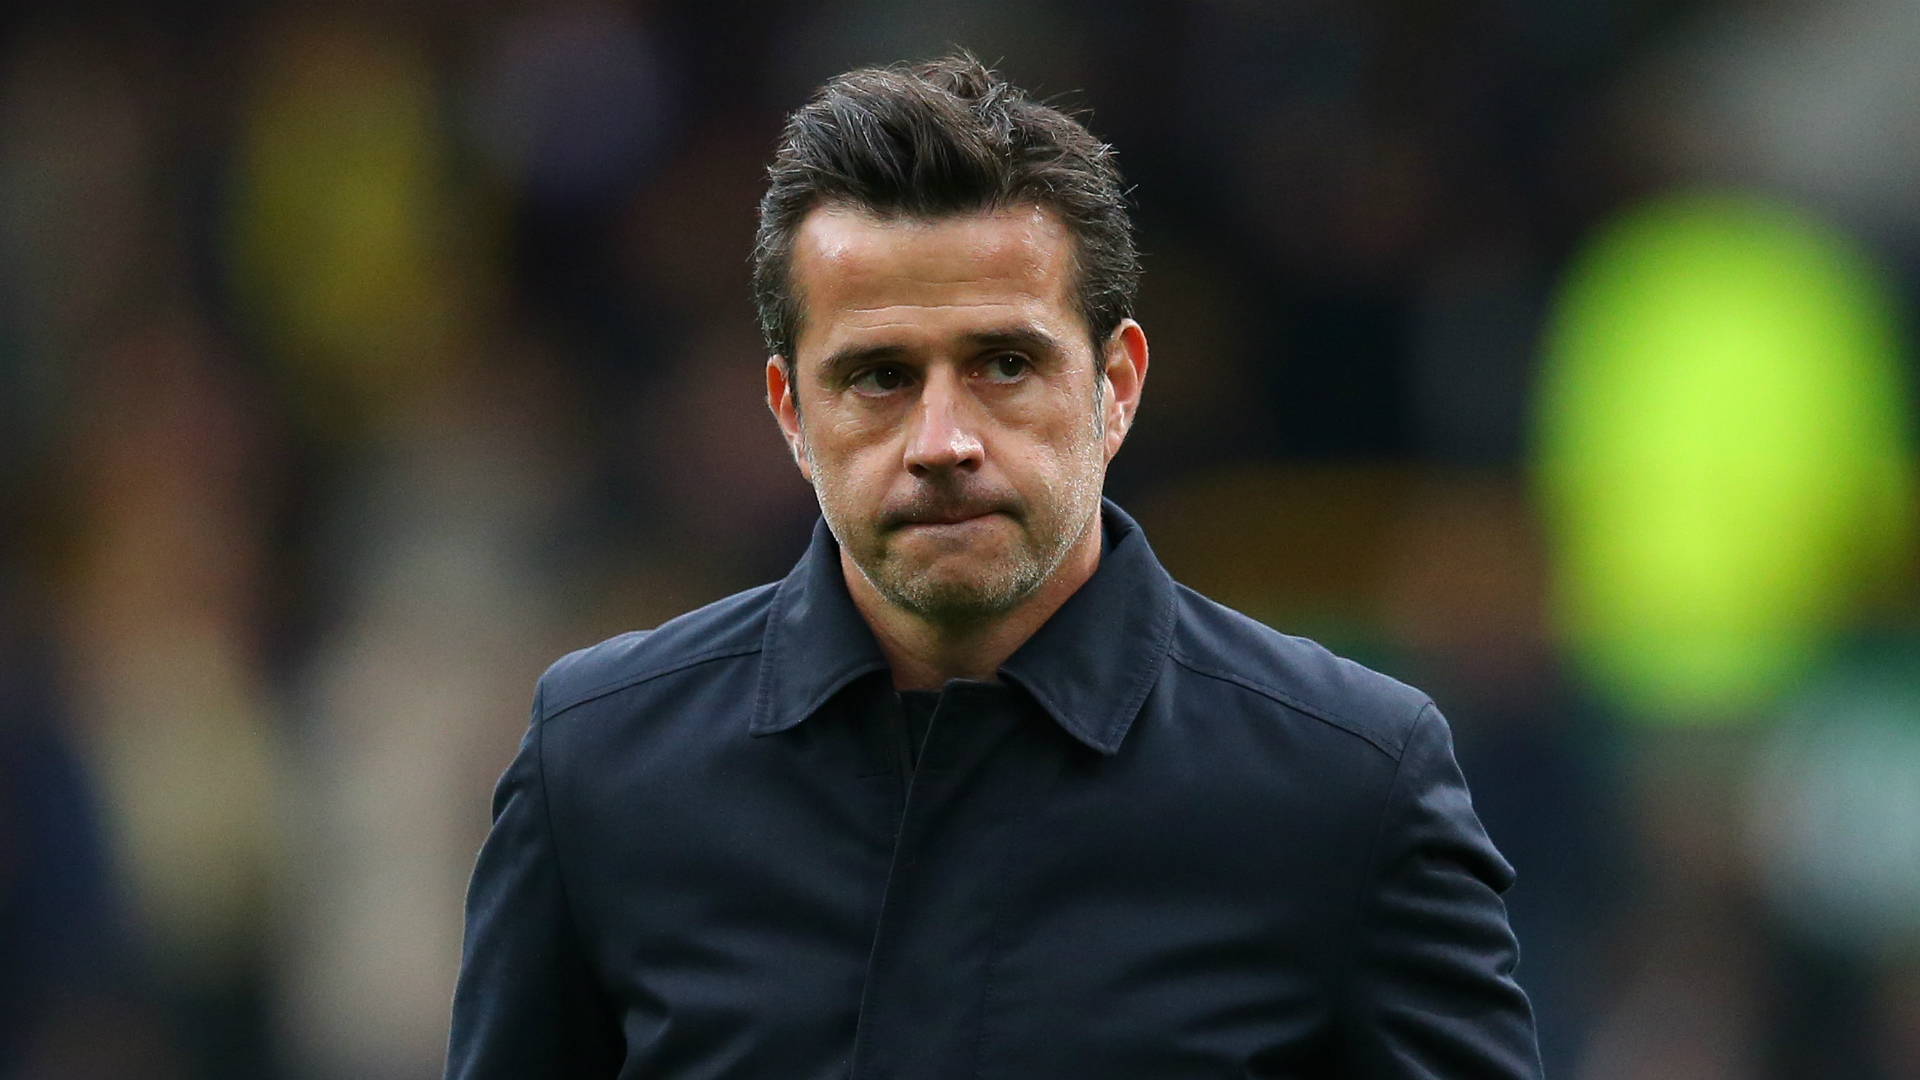 Rumour Has It: Everton boss Silva on the brink ahead of Merseyside derby